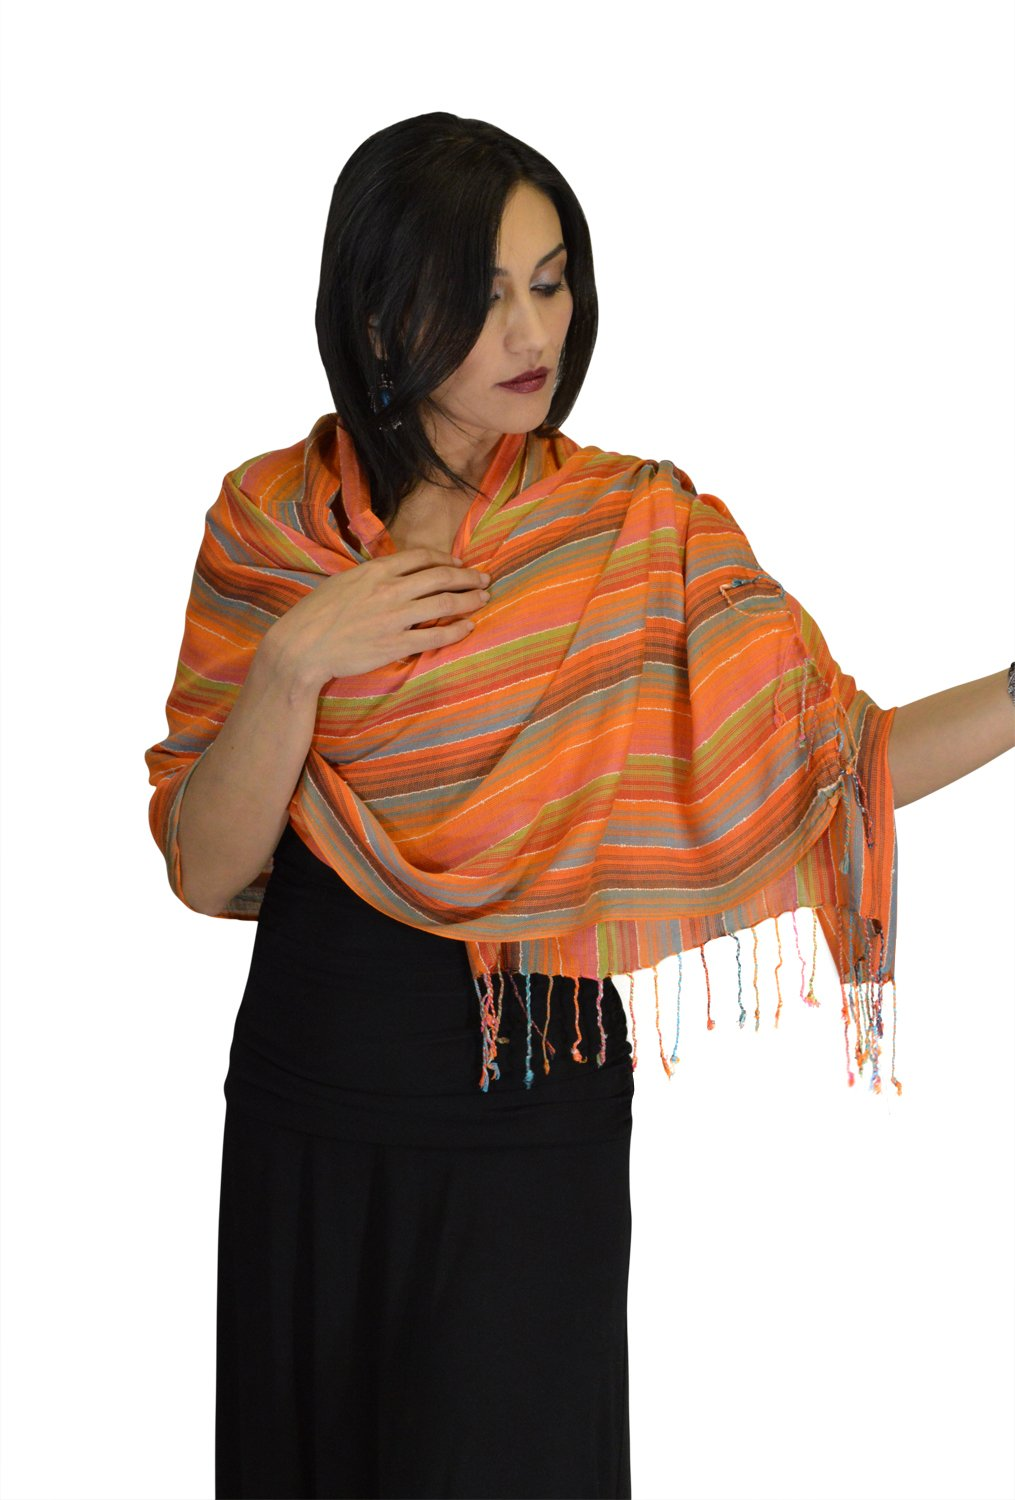 Moroccan Shoulder Shawl Breathable Oblong Head Scarf cotton Exquisite Wrap by Treasures of Morocco Shawls (Image #2)